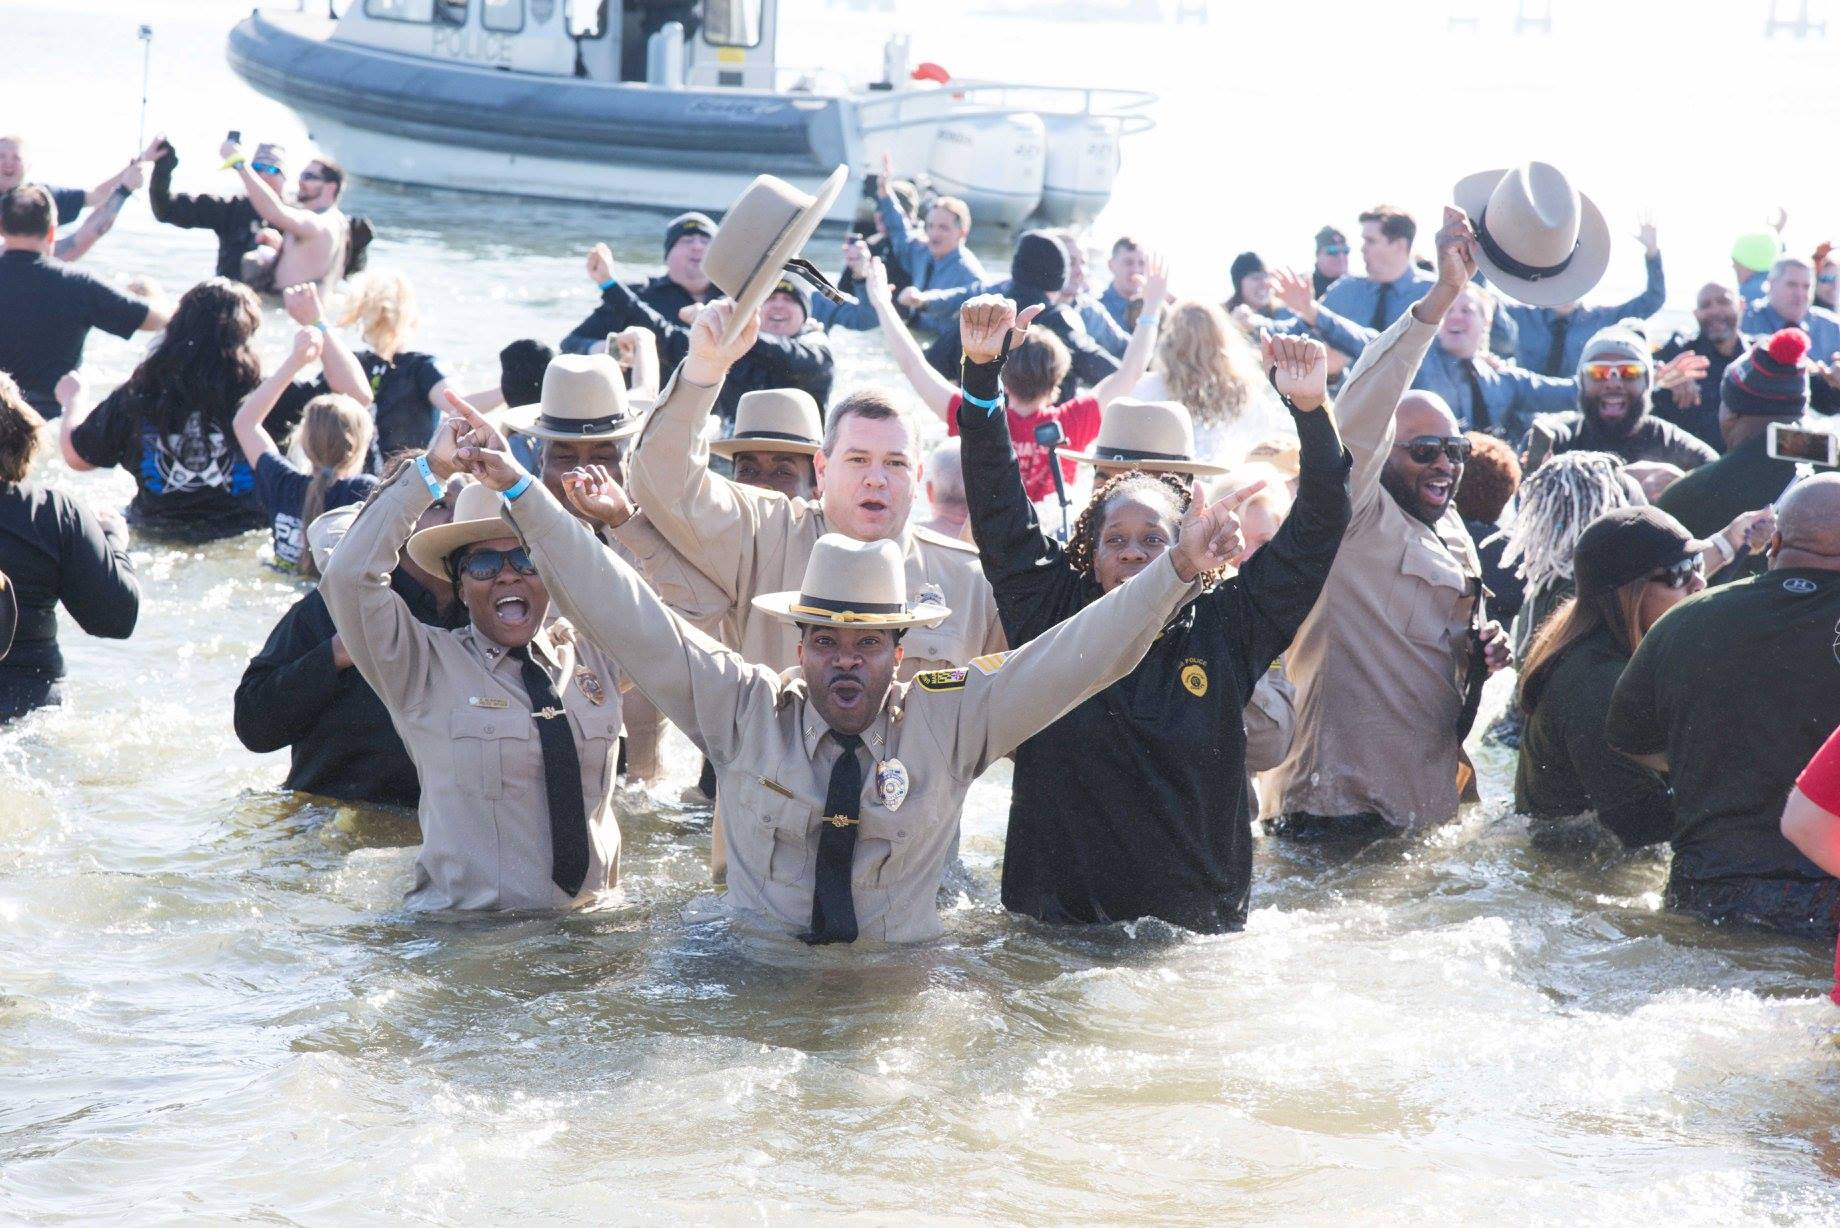 UMB police officers dive headfirst into the frigid waters of the Chesapeake Bay to raise money for the Maryland Special Olympics at the 2018 Polar Bear Plunge.